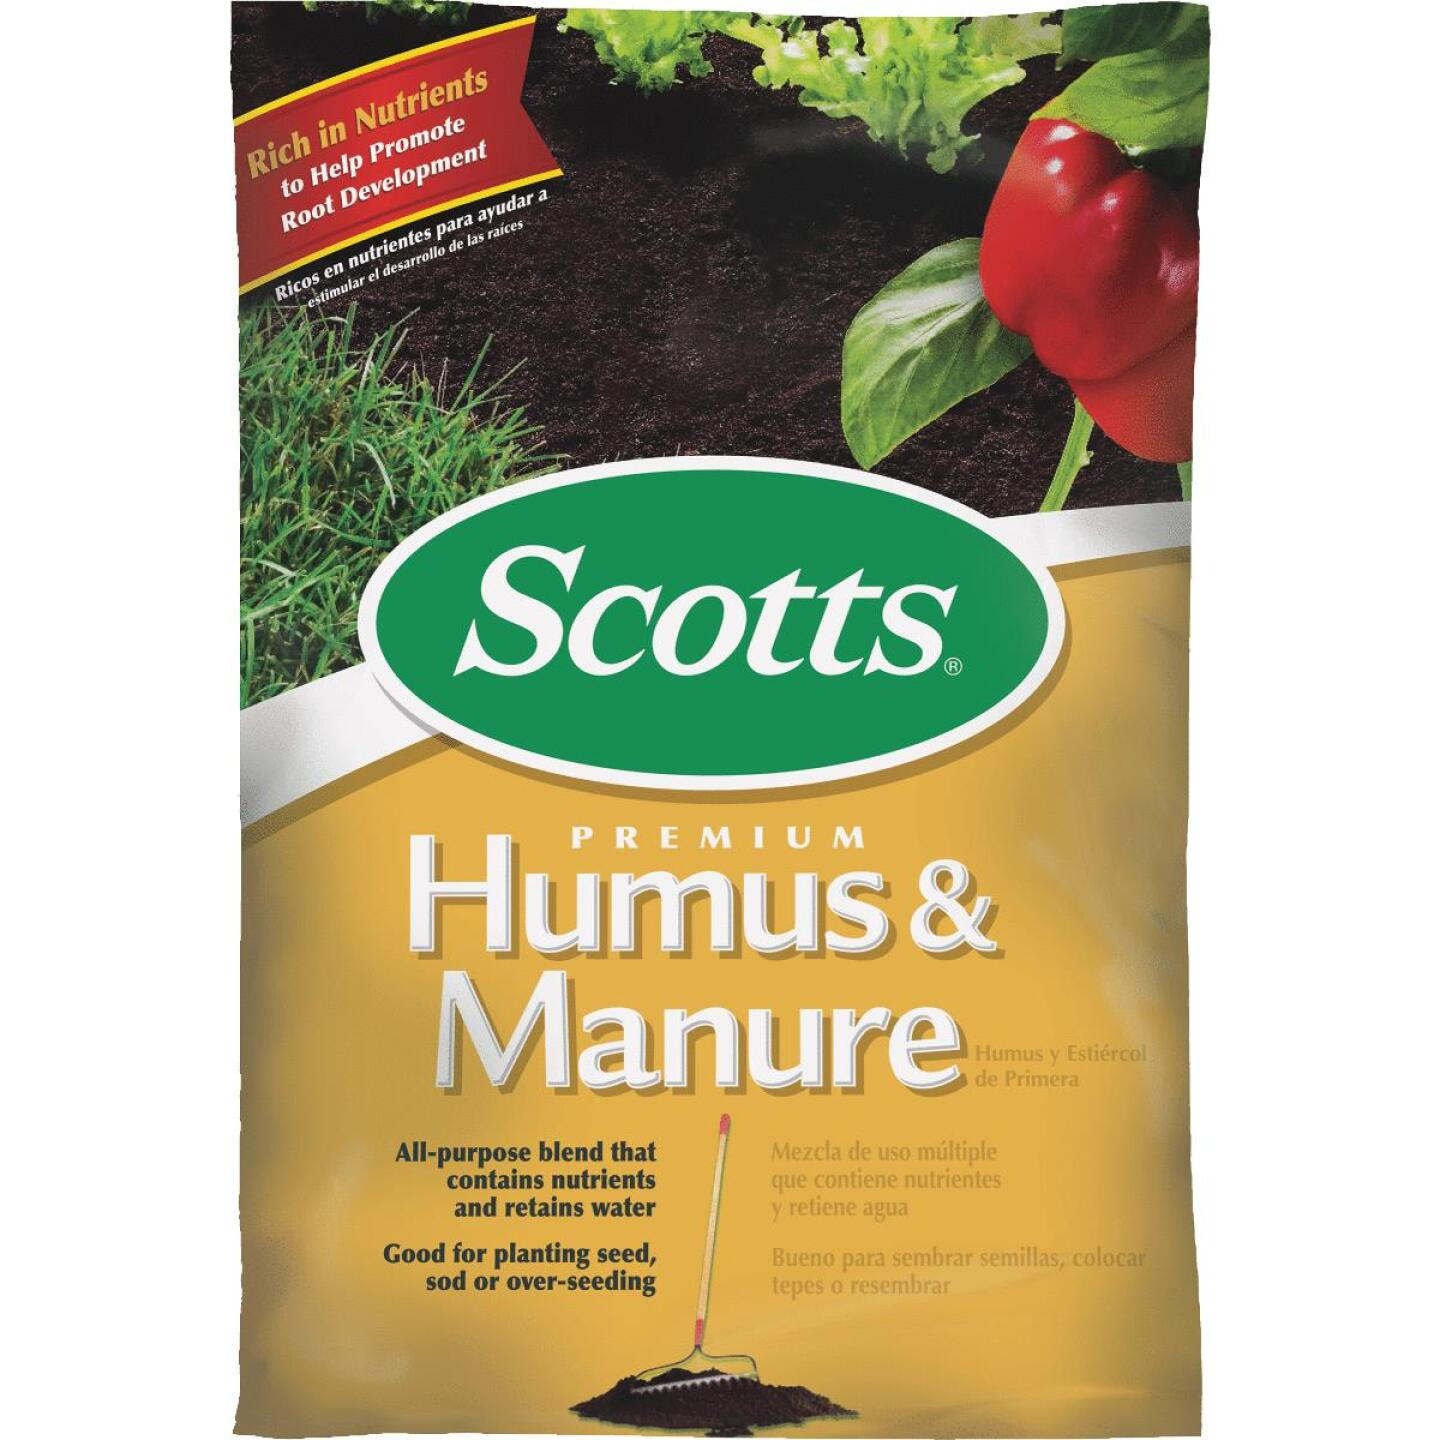 Scotts 43 Lb. 0.75 Cu. Ft. Humus & Manure Image 1